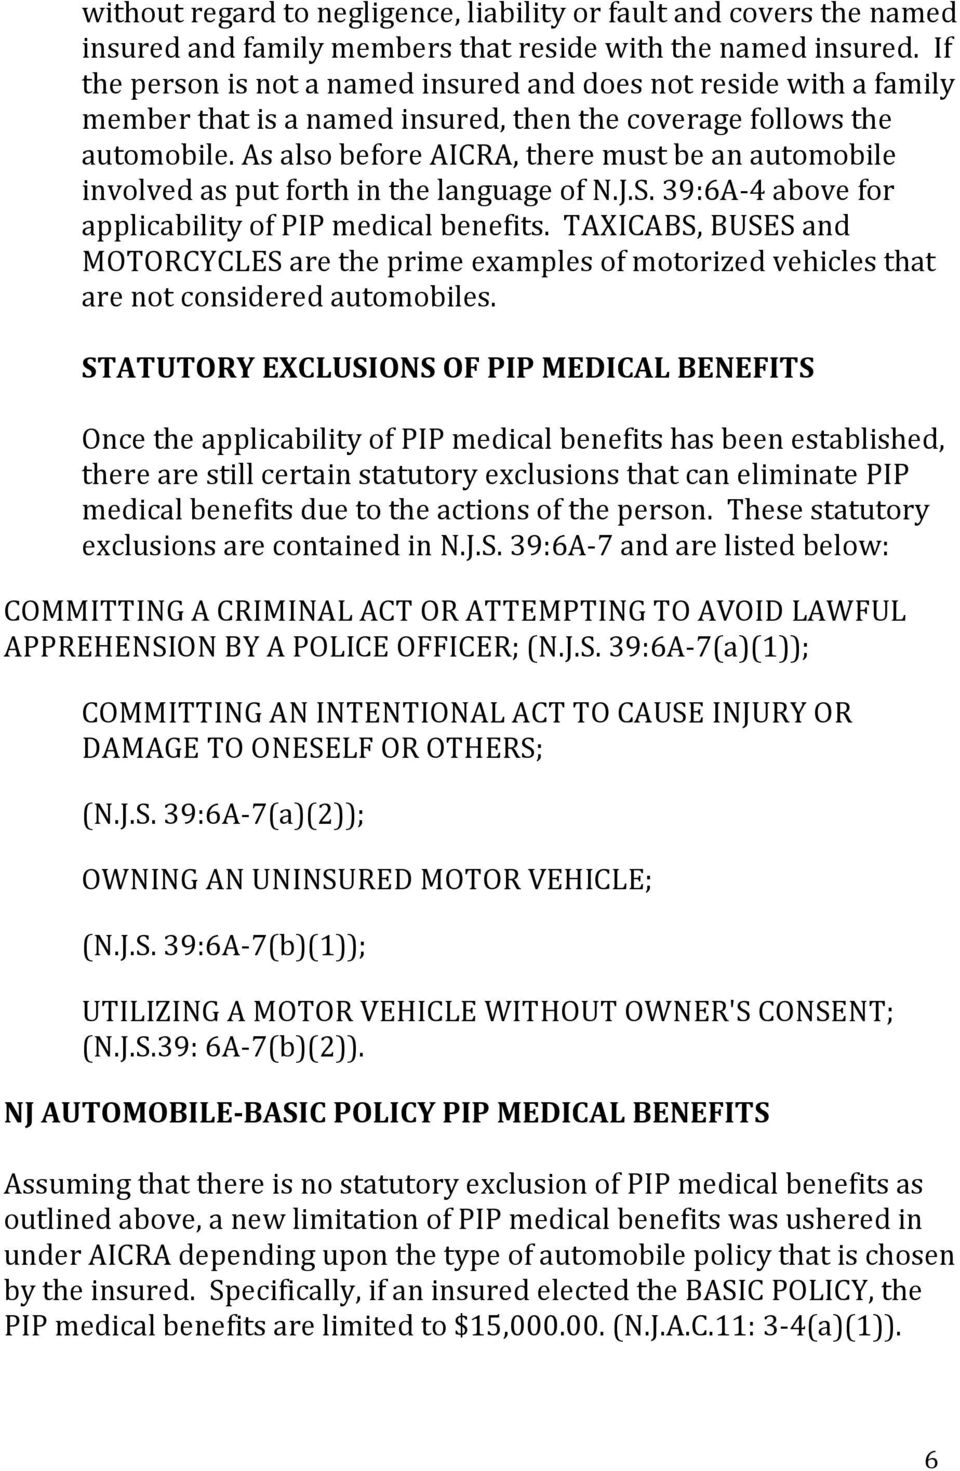 As also before AICRA, there must be an automobile involved as put forth in the language of N.J.S. 39:6A- 4 above for applicability of PIP medical benefits.